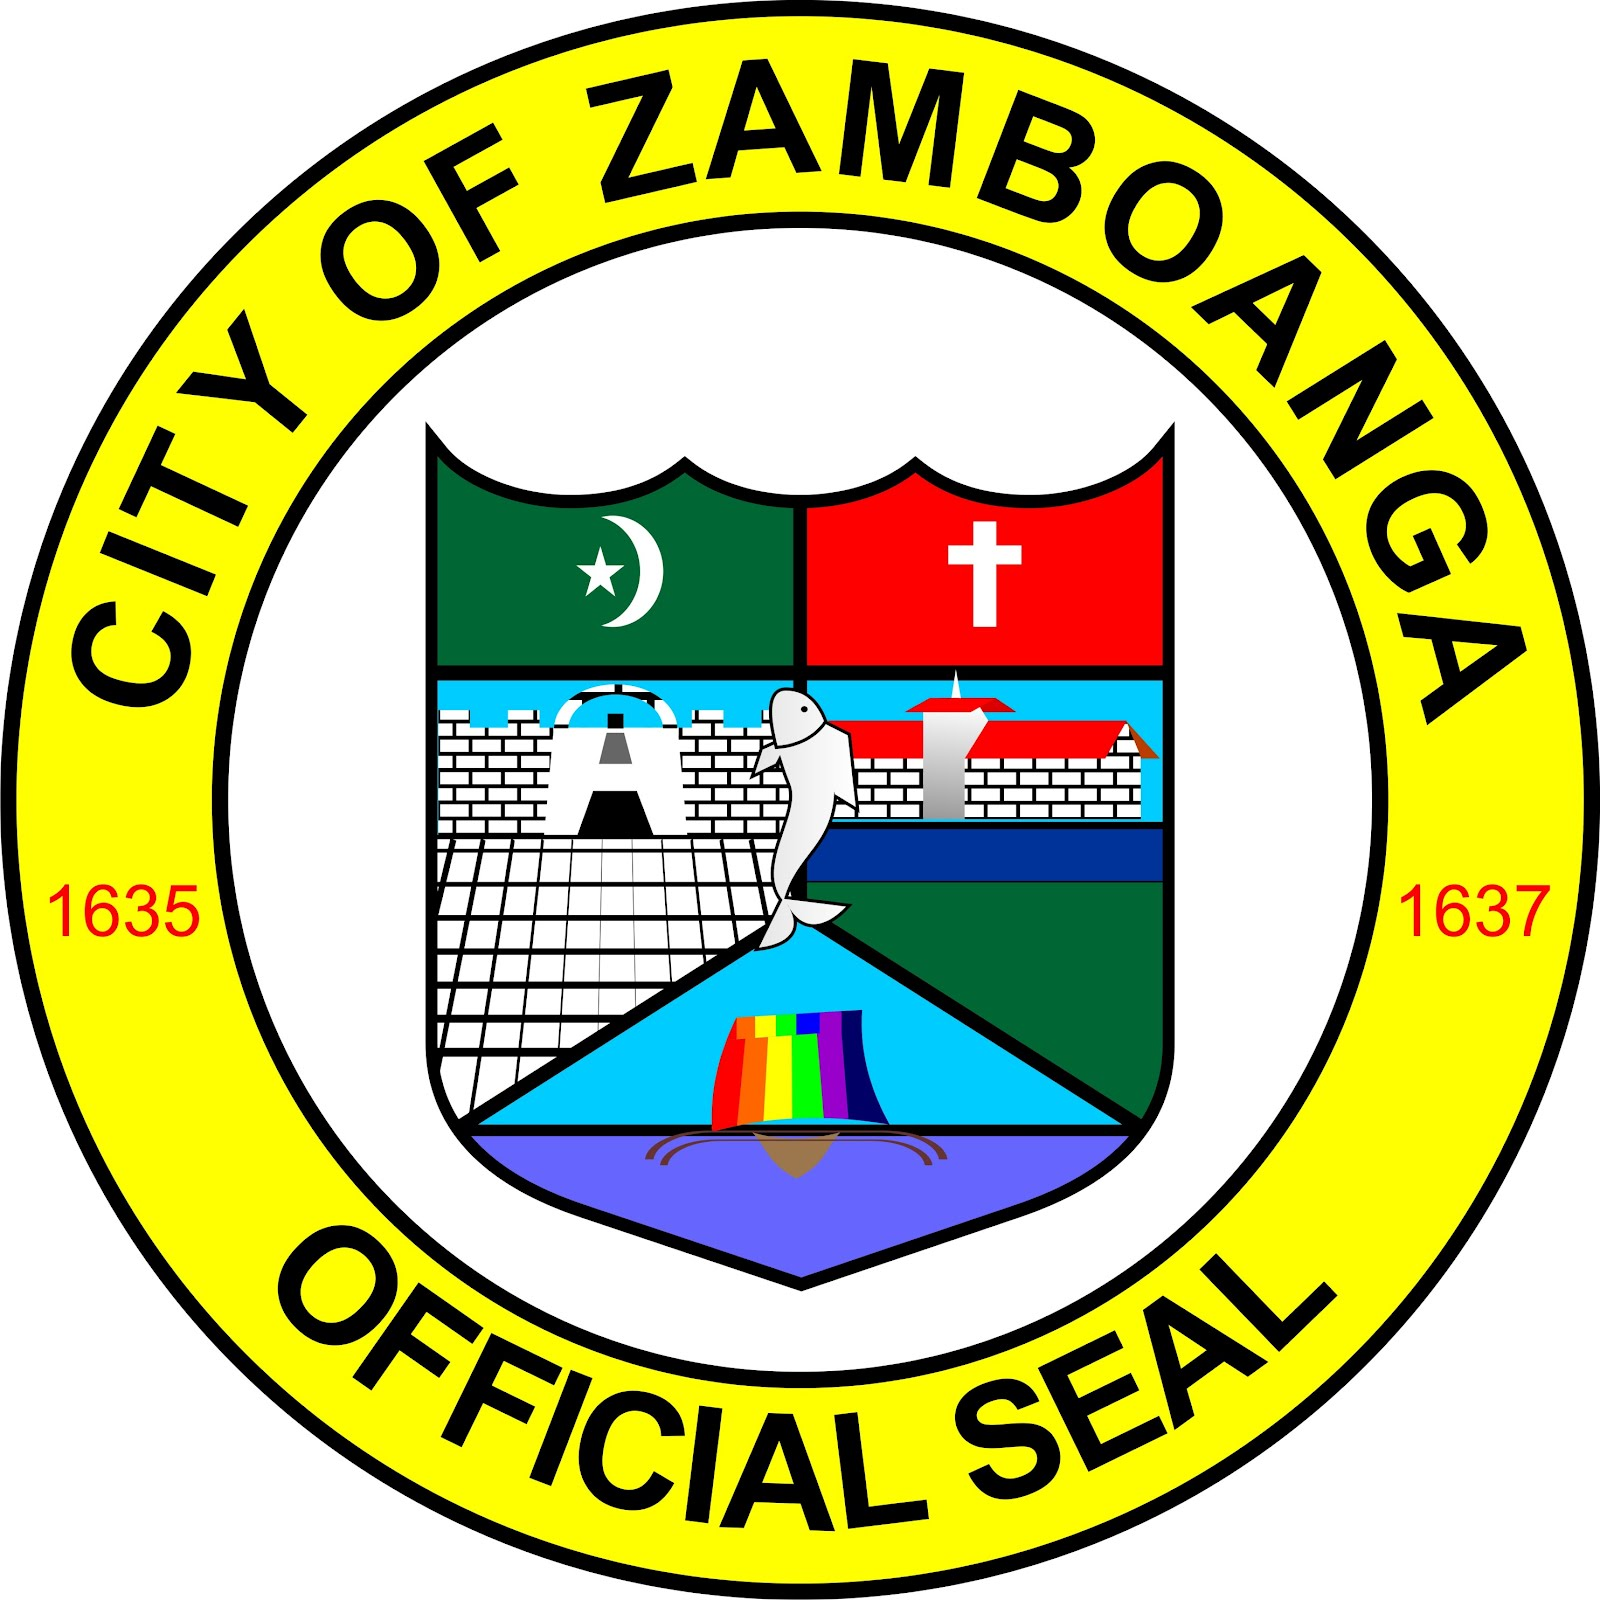 Logo prate mark print works for Bureau zamboanga